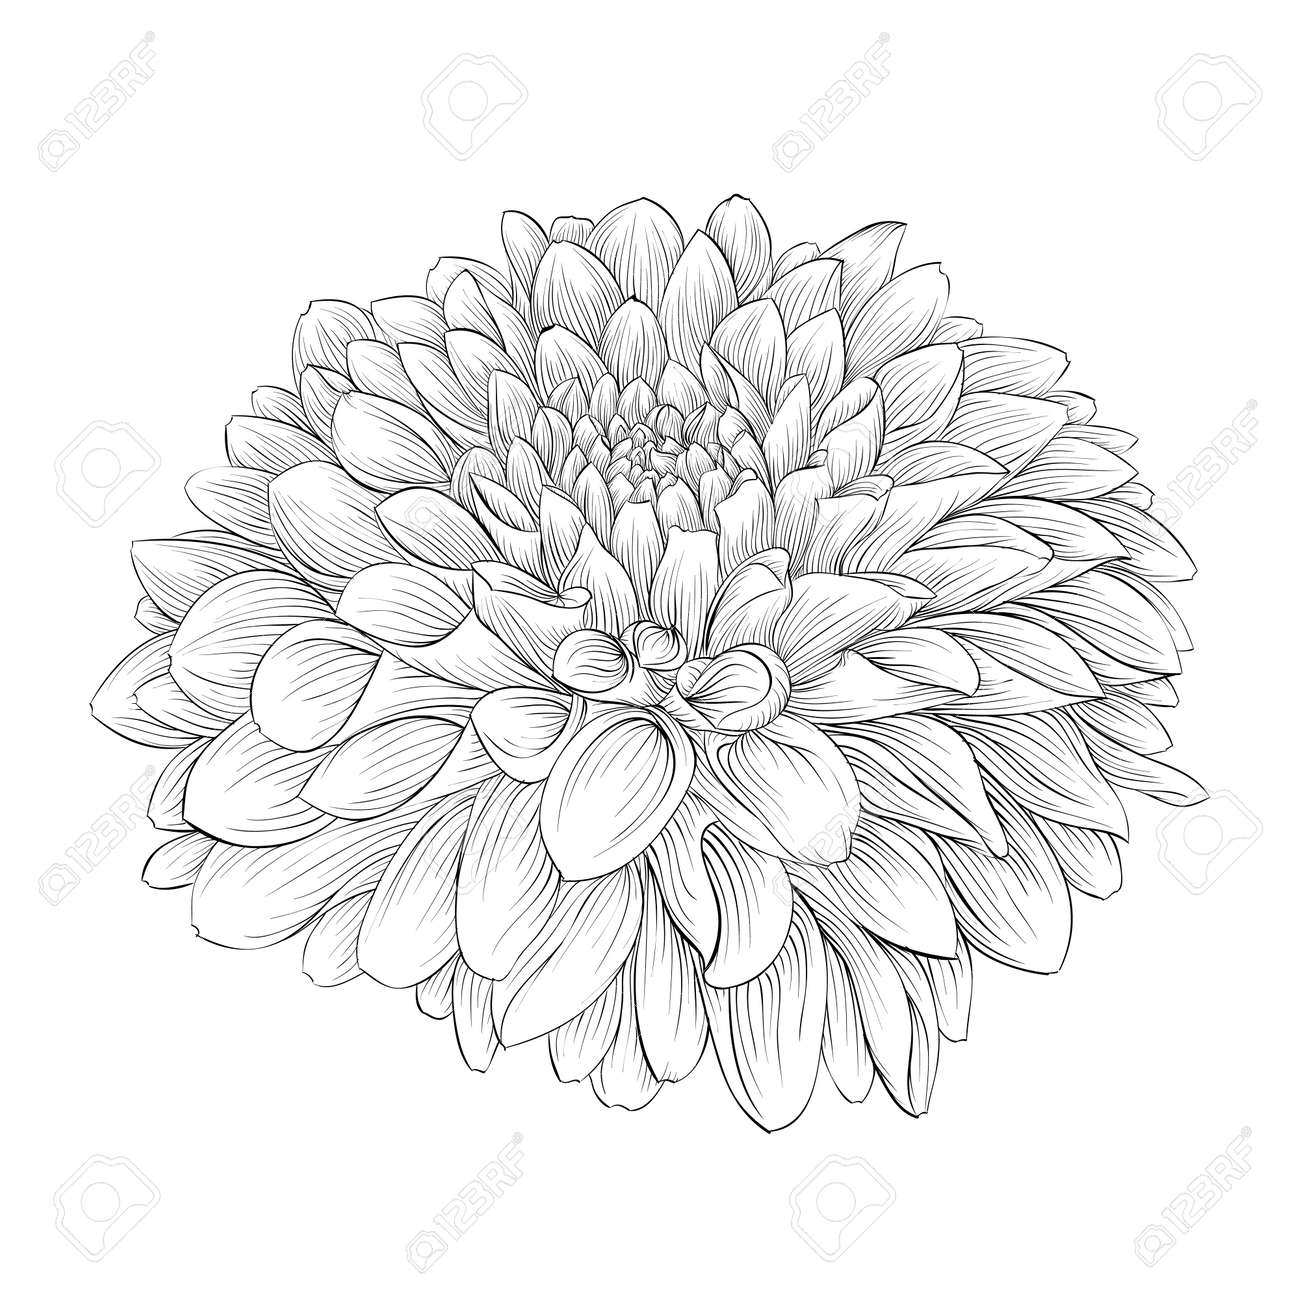 Beautiful Monochrome Black And White Dahlia Flower Isolated On